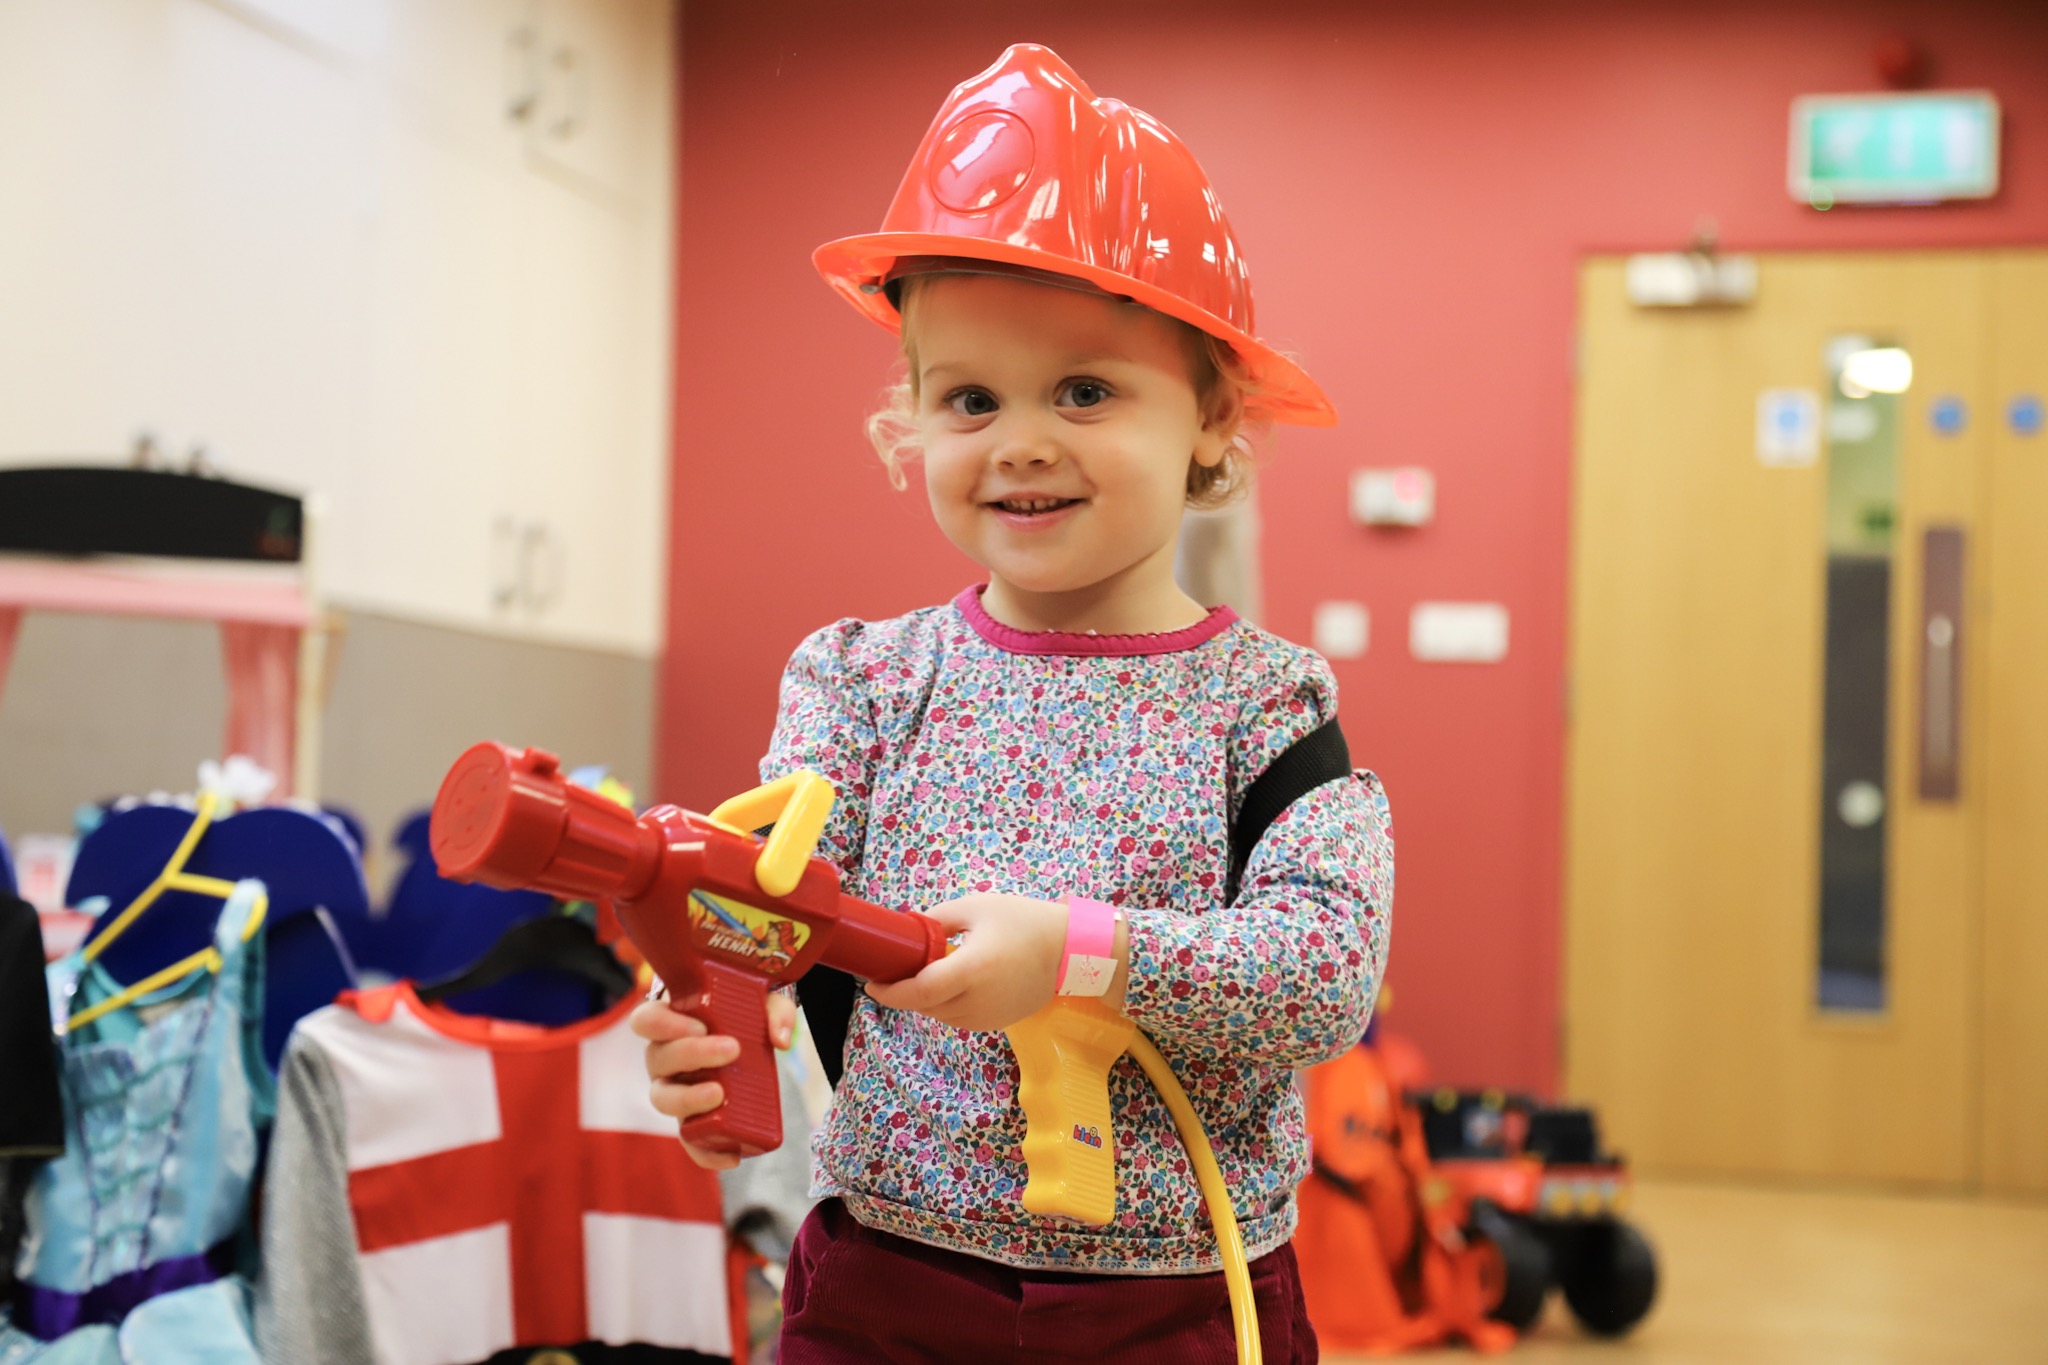 little girl playing with toy fire extinguisher in role-play